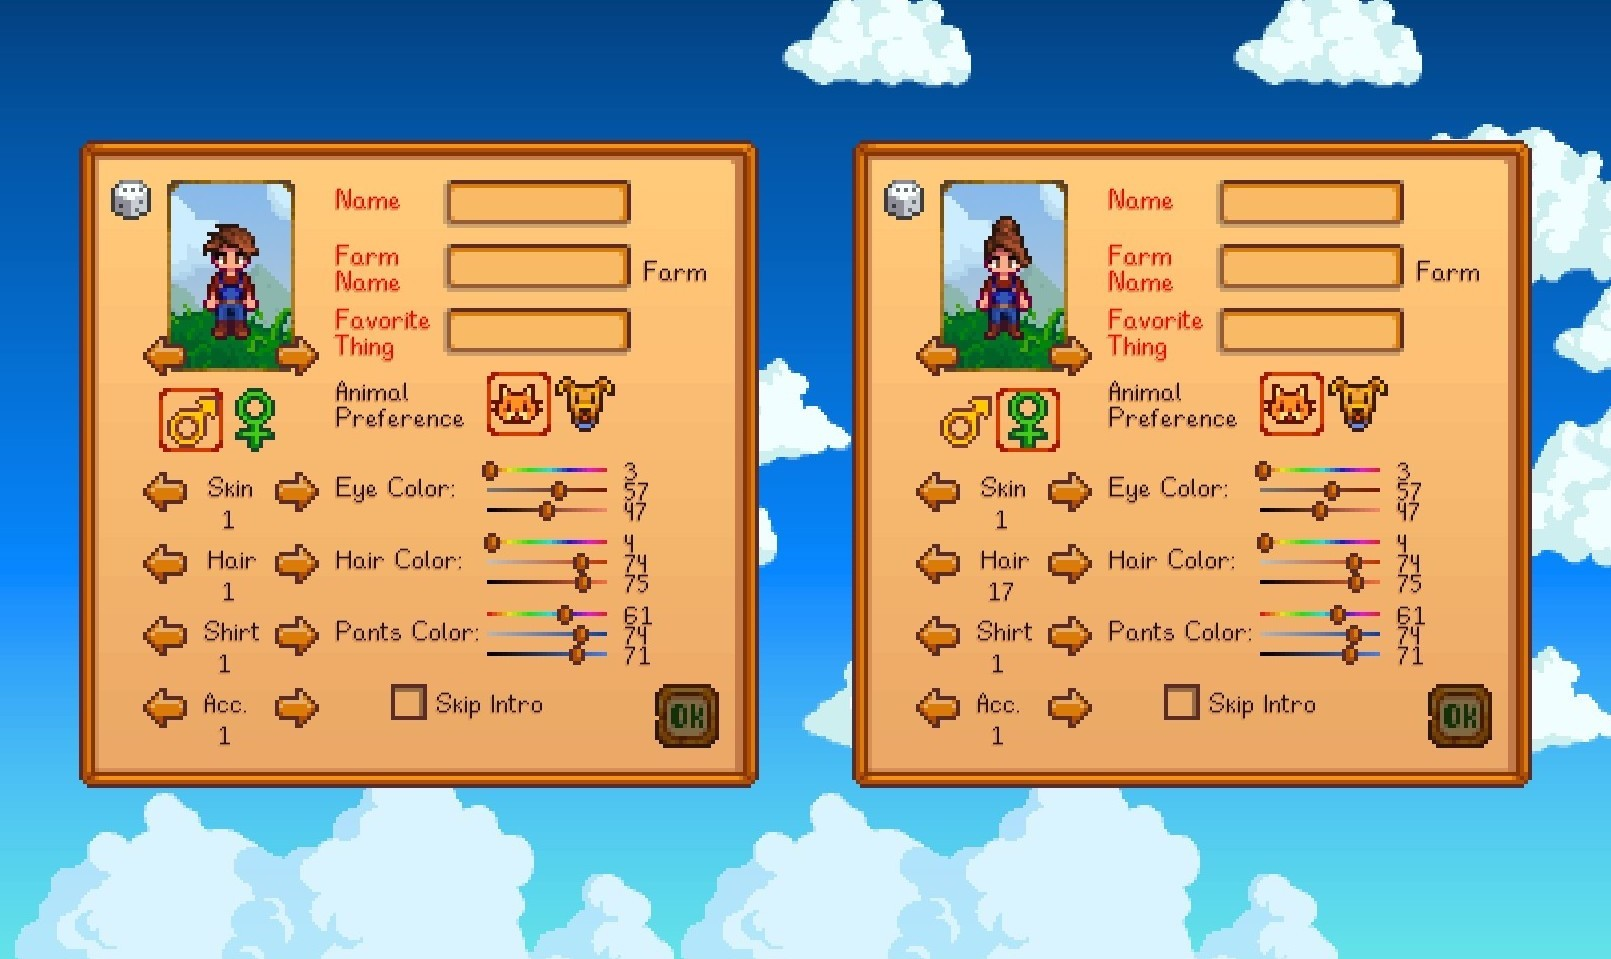 Stardew Valley character selection screen.